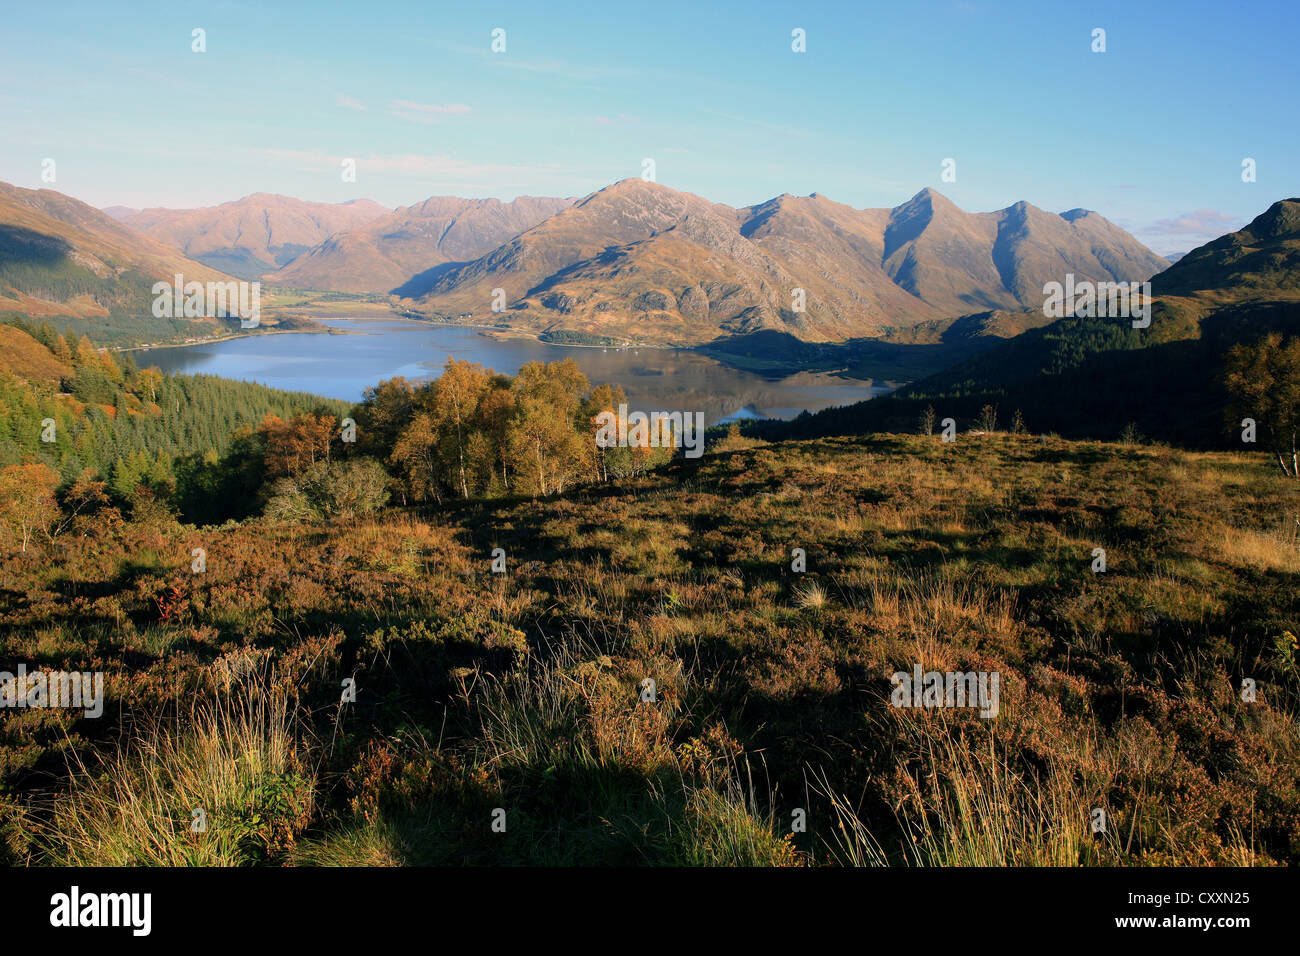 The Five Sisters of Kintail and Loch Duich in the Scottish Highlands. Autumn colours of trees and heather - Stock Image